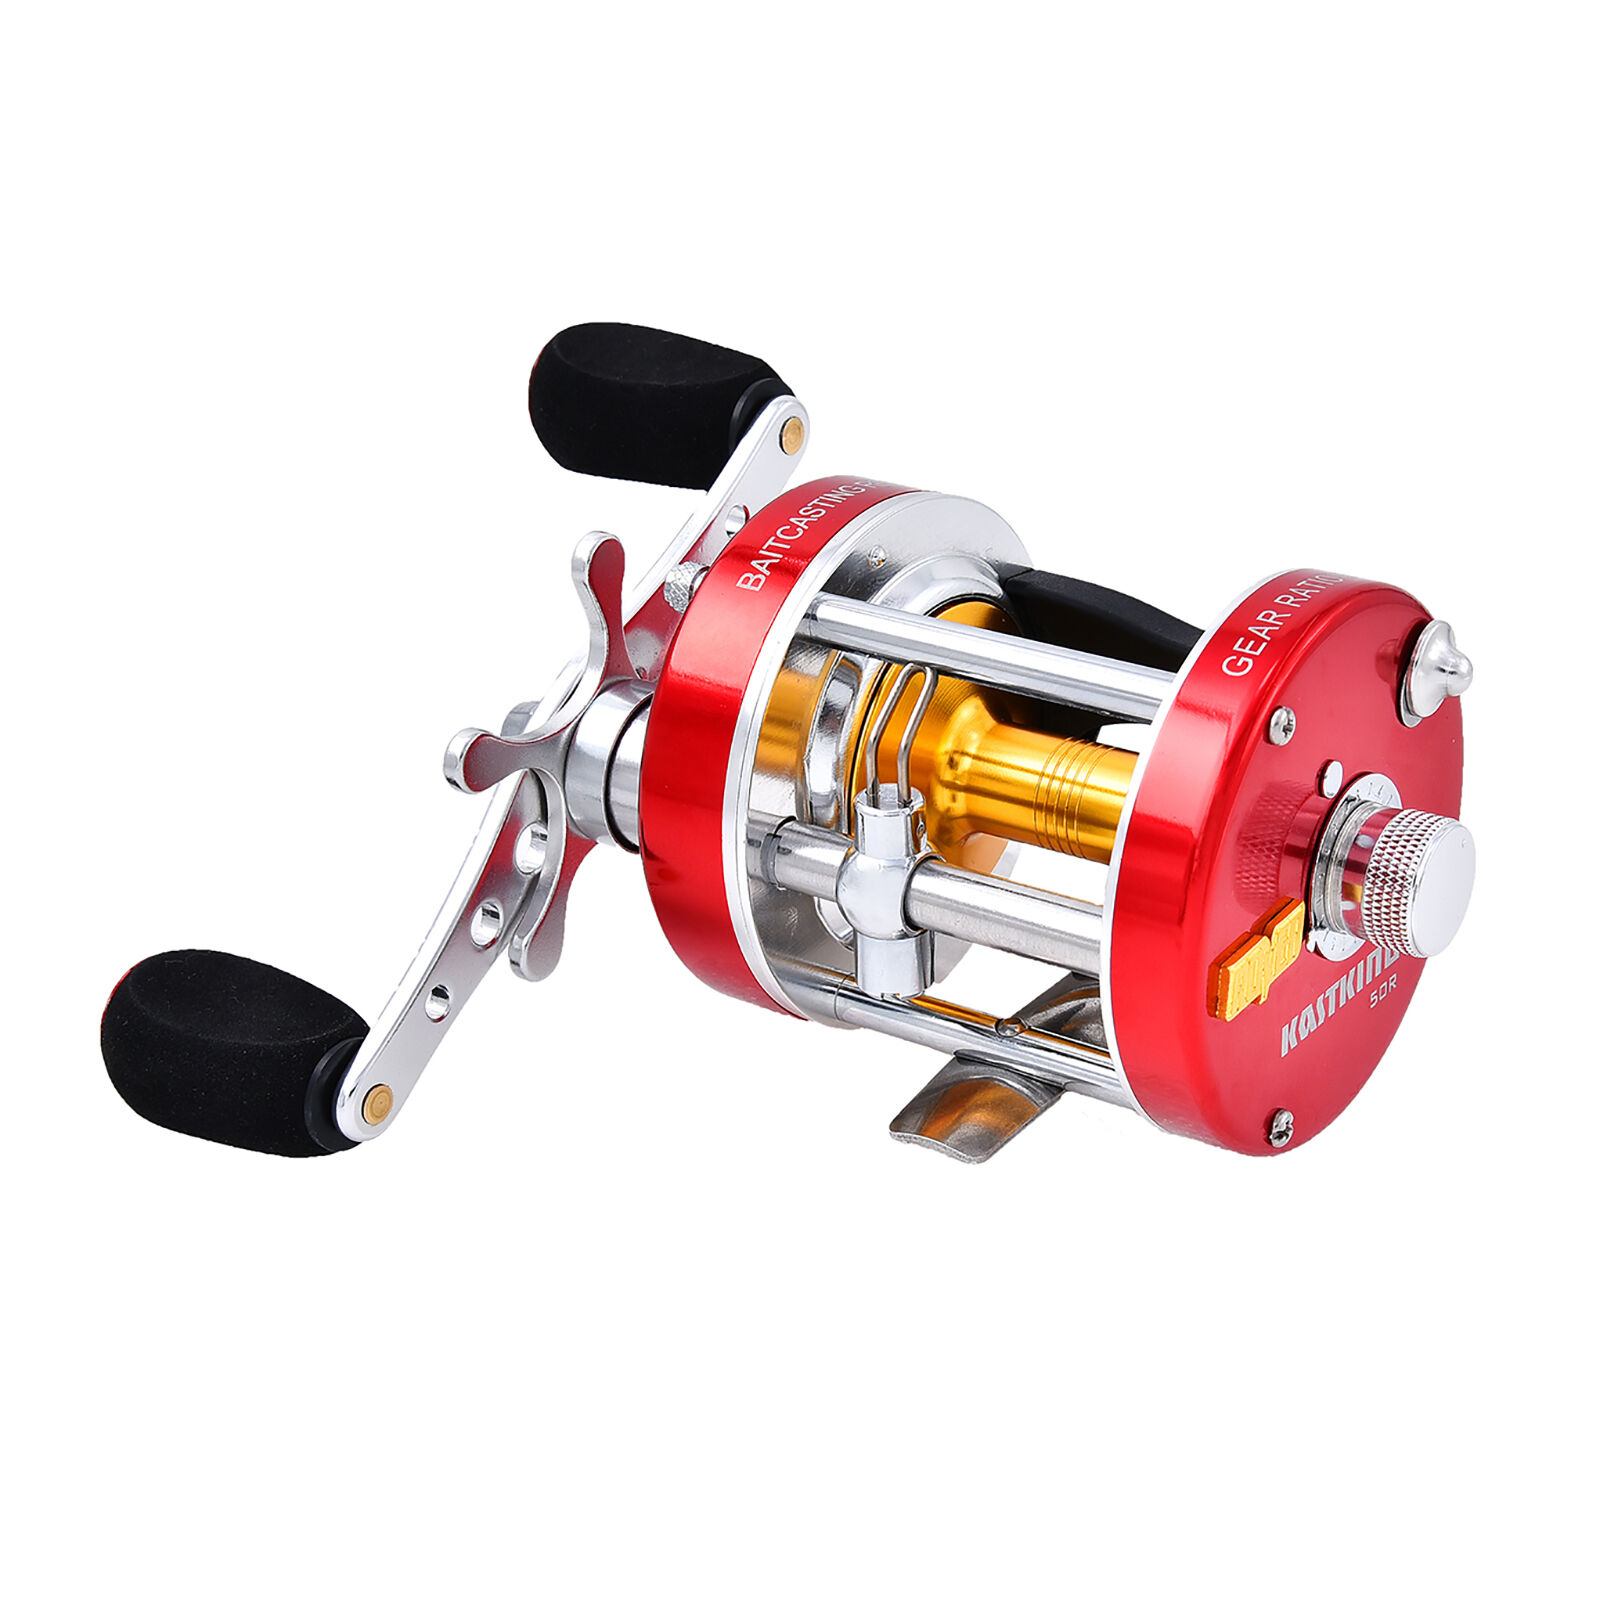 KastKing Rover50R Round Baitcasting Reel - No.1 Highest Rated Conventional Reel